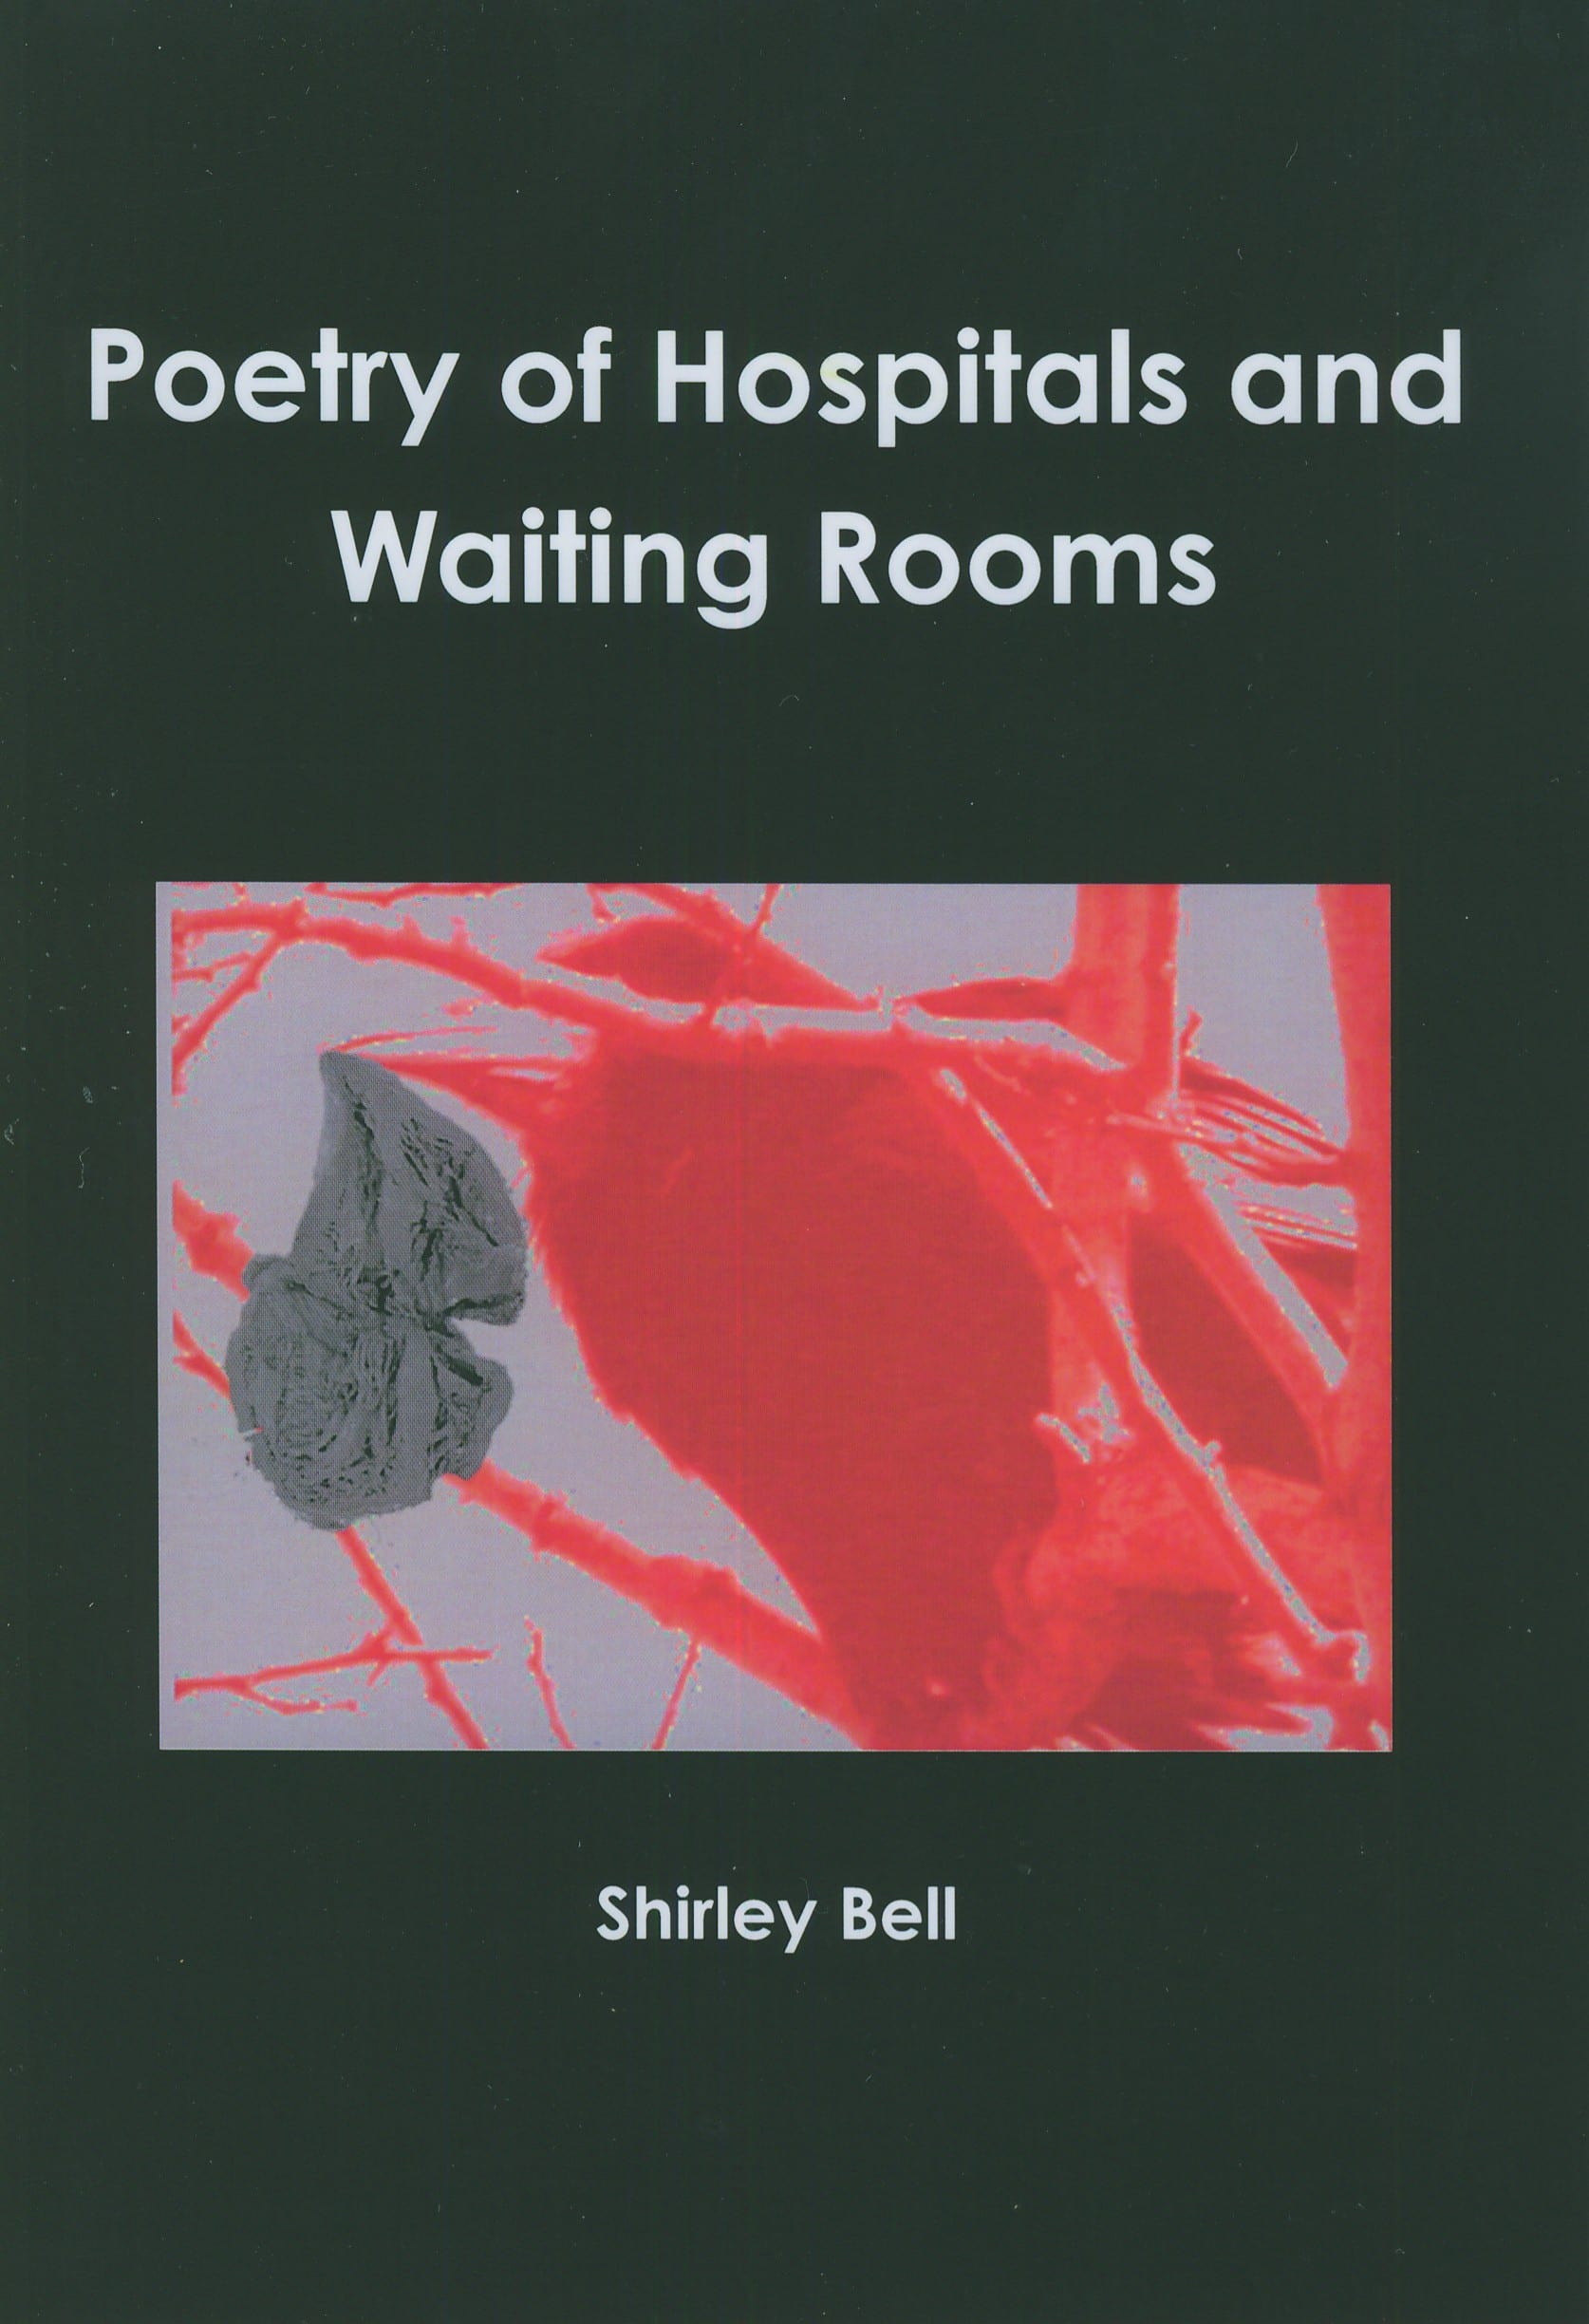 poemsofwaitingrooms